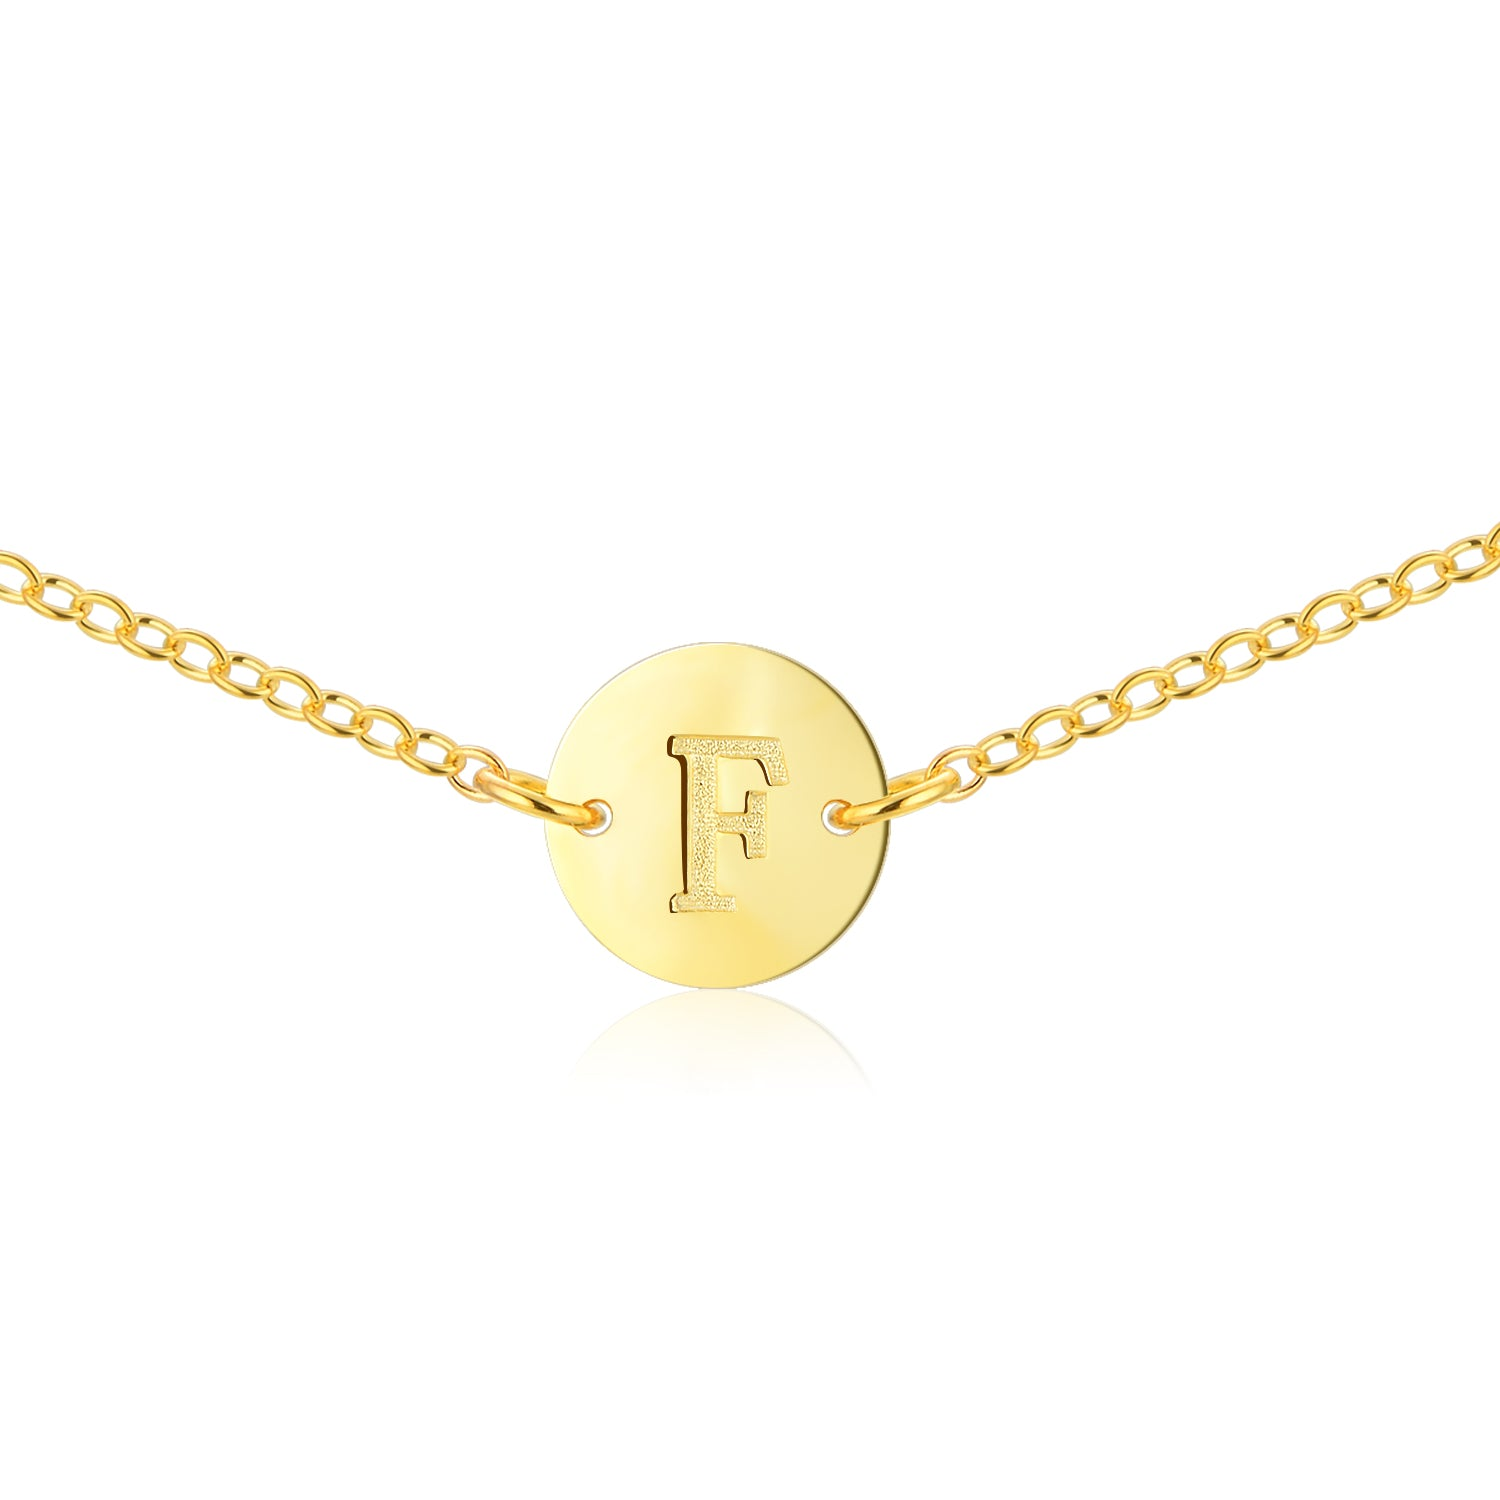 Initial Necklace [ Letter G ] - .925 Sterling Silver [18K Gold Plated] Chain [14 Inch]